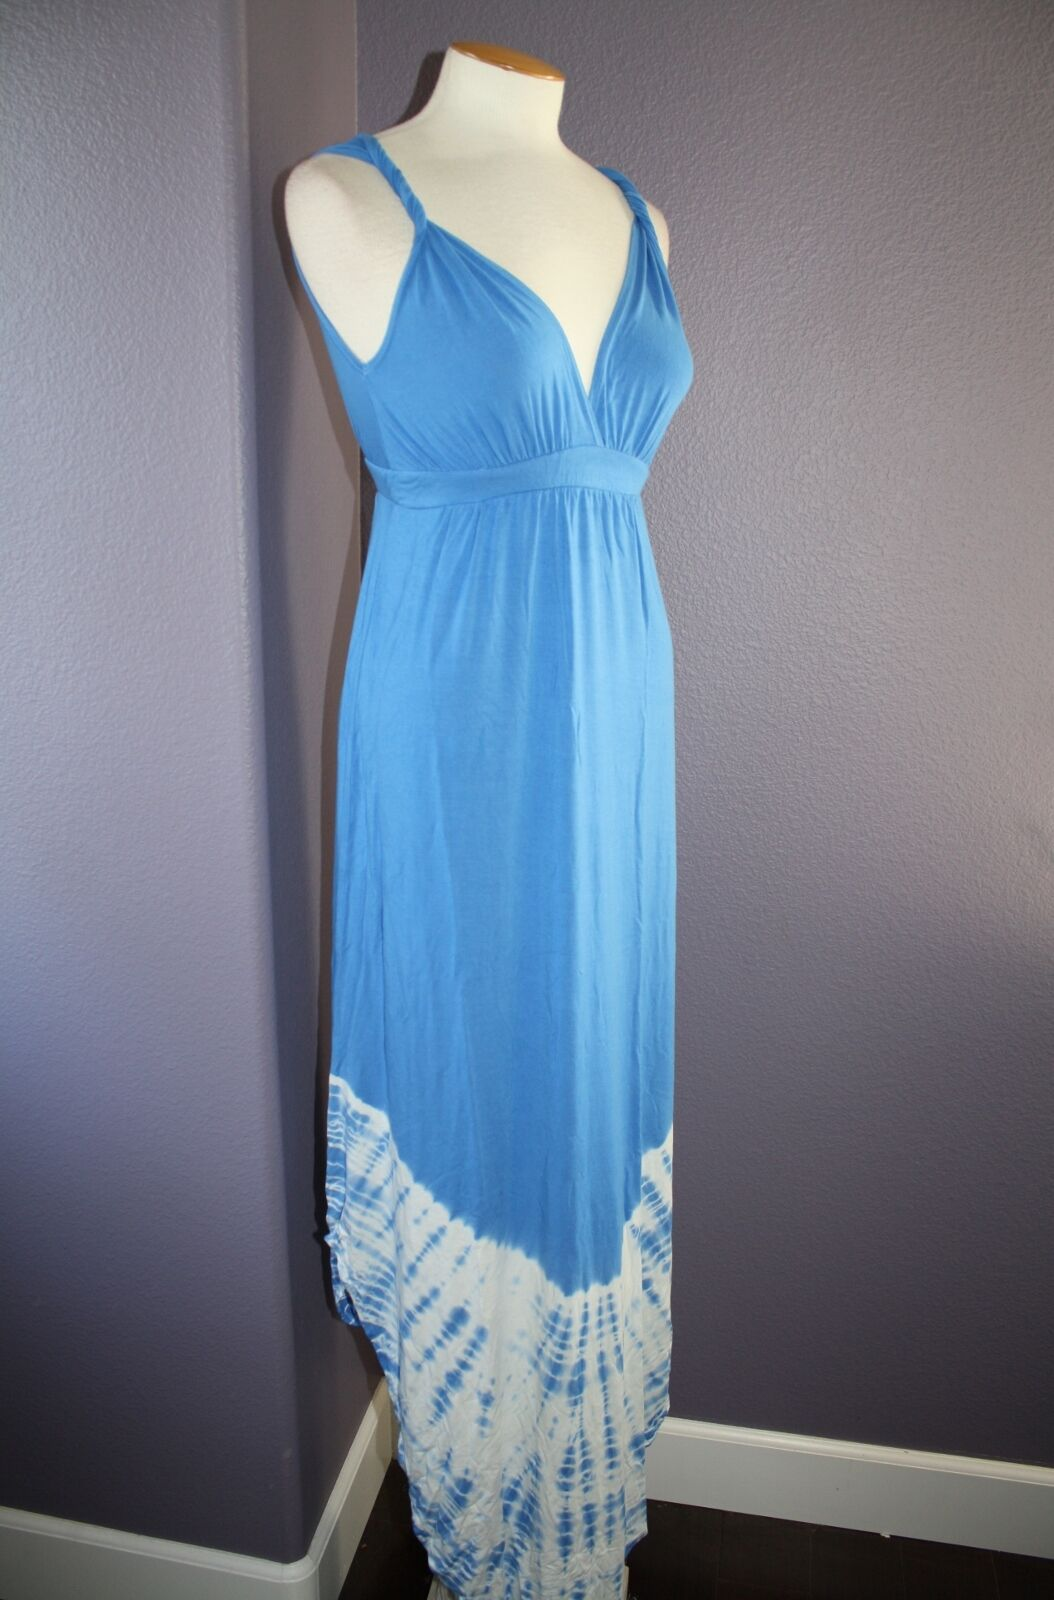 NWT Gypsy 05 La Ba Dee bluee Tie Dye Deep V Bamboo Twist Strap Maxi Dress S